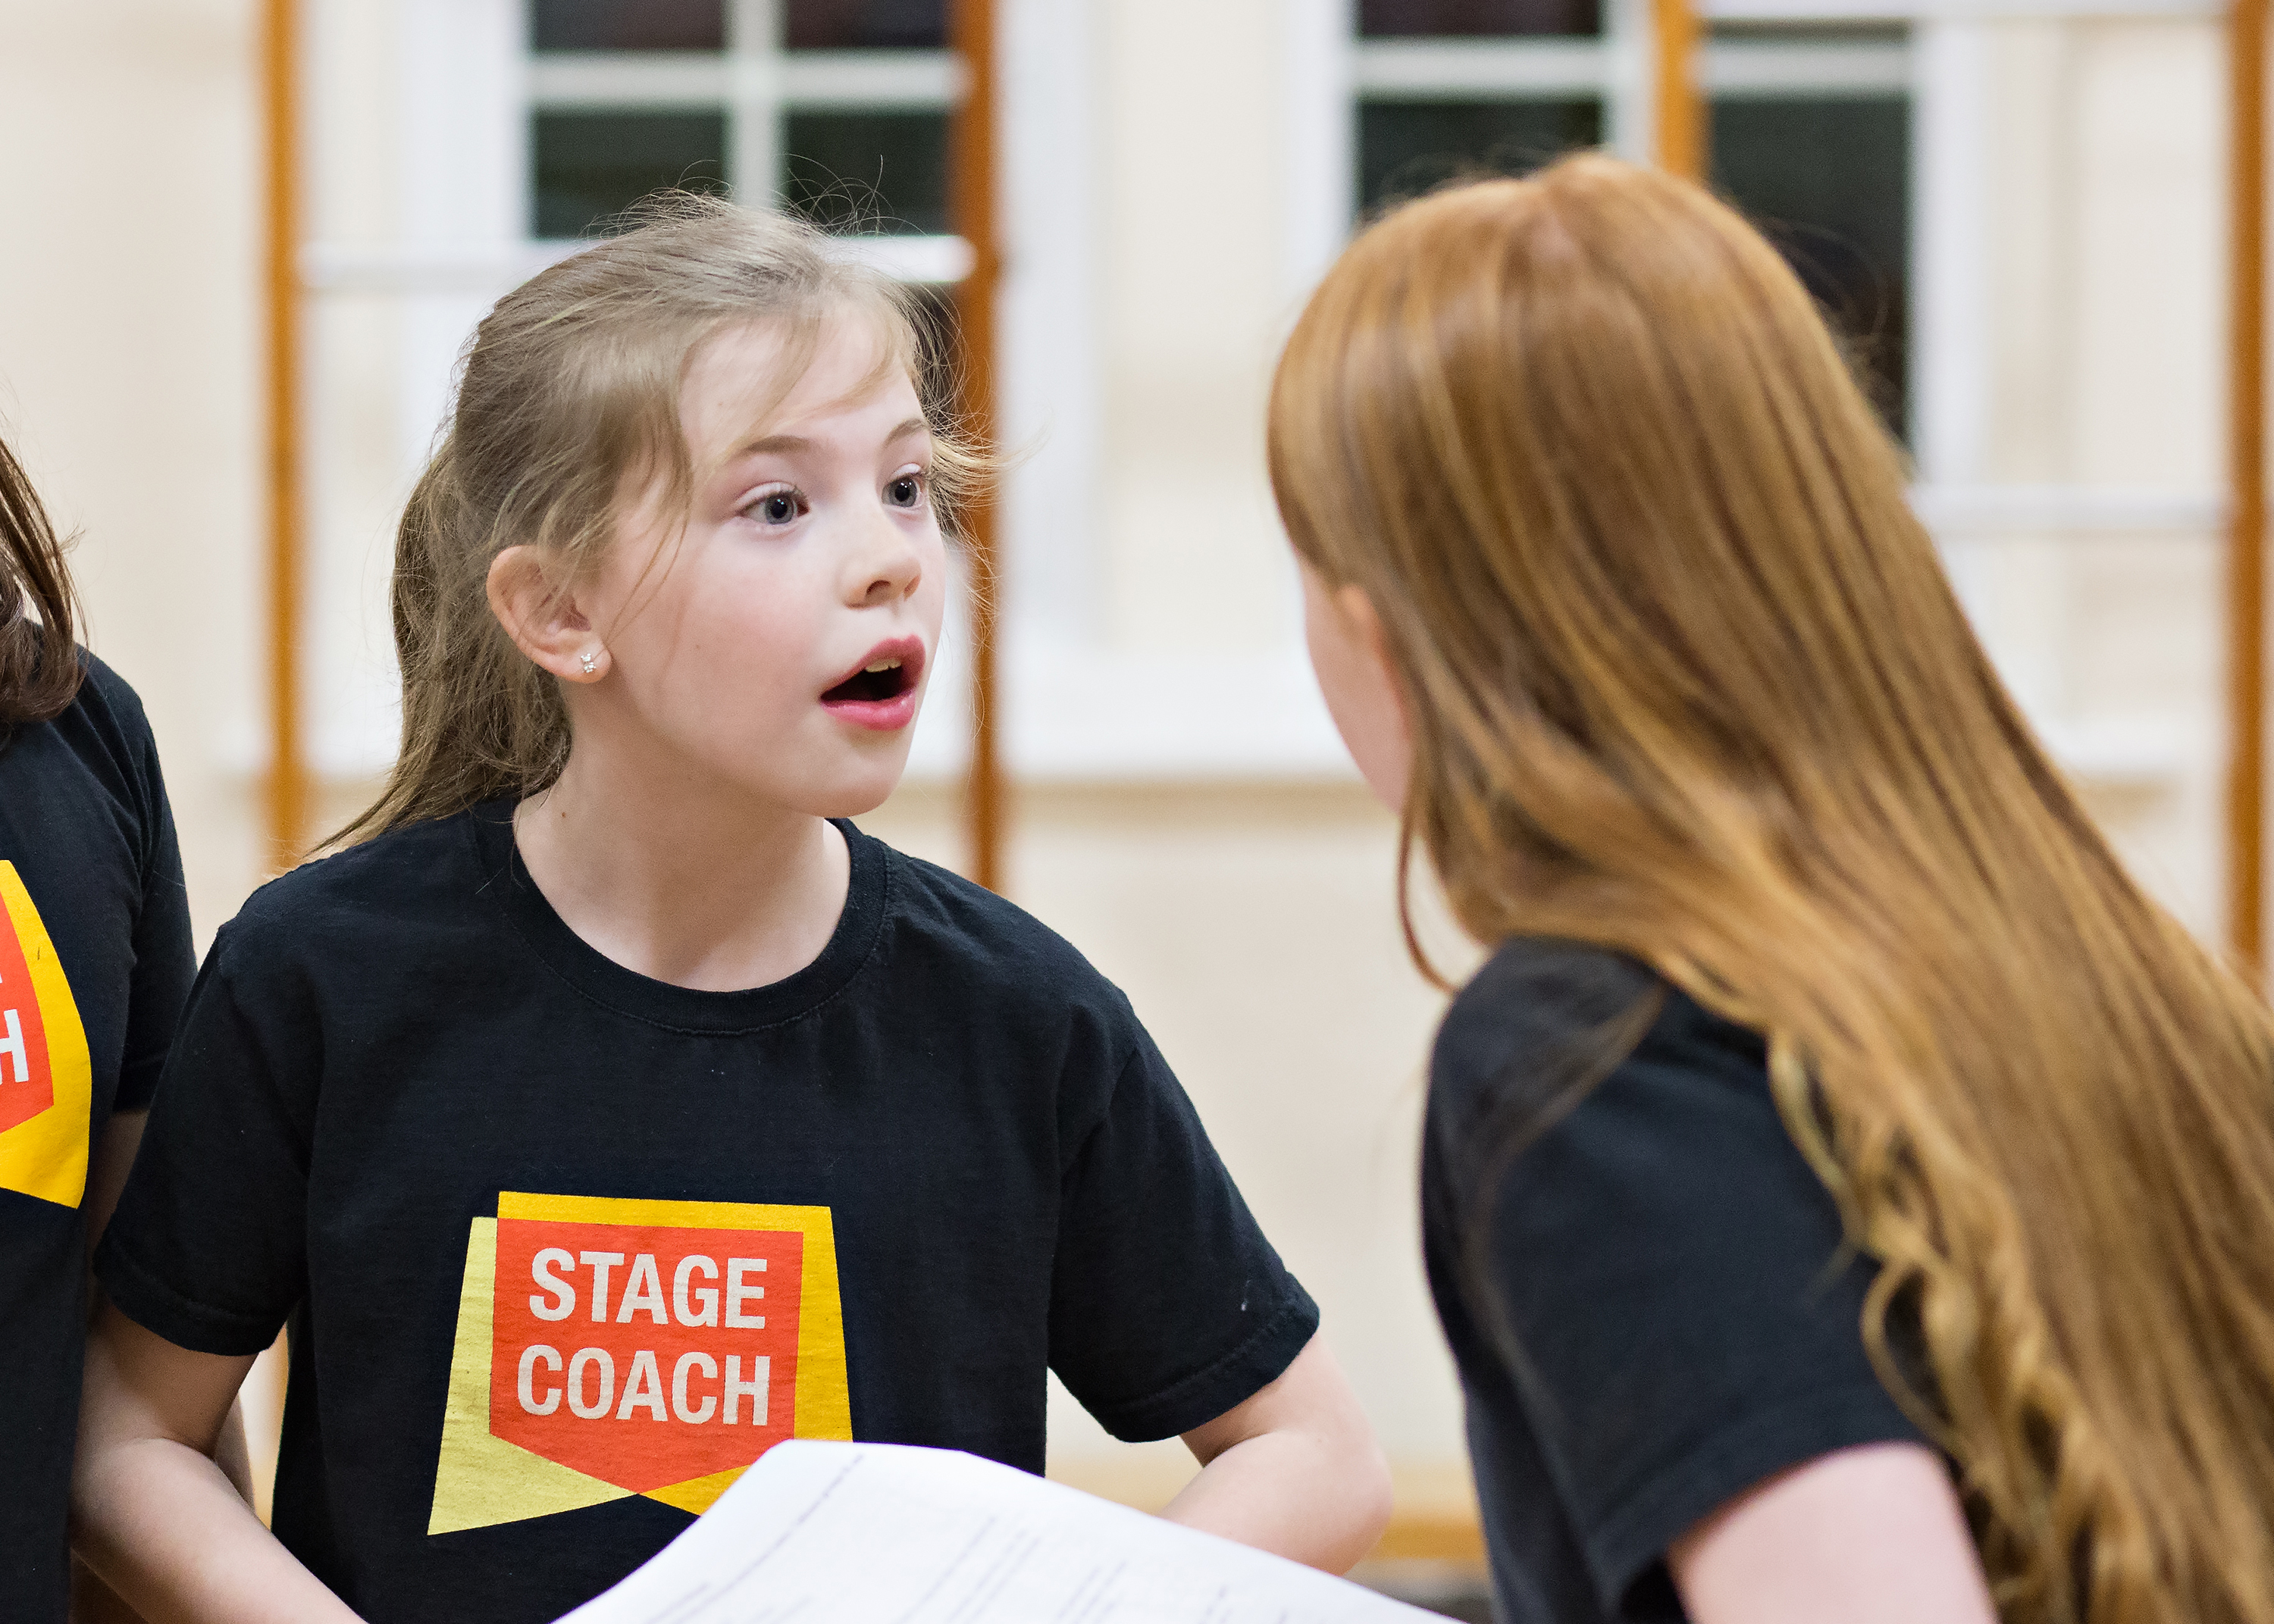 children's acting class at Stagecoach